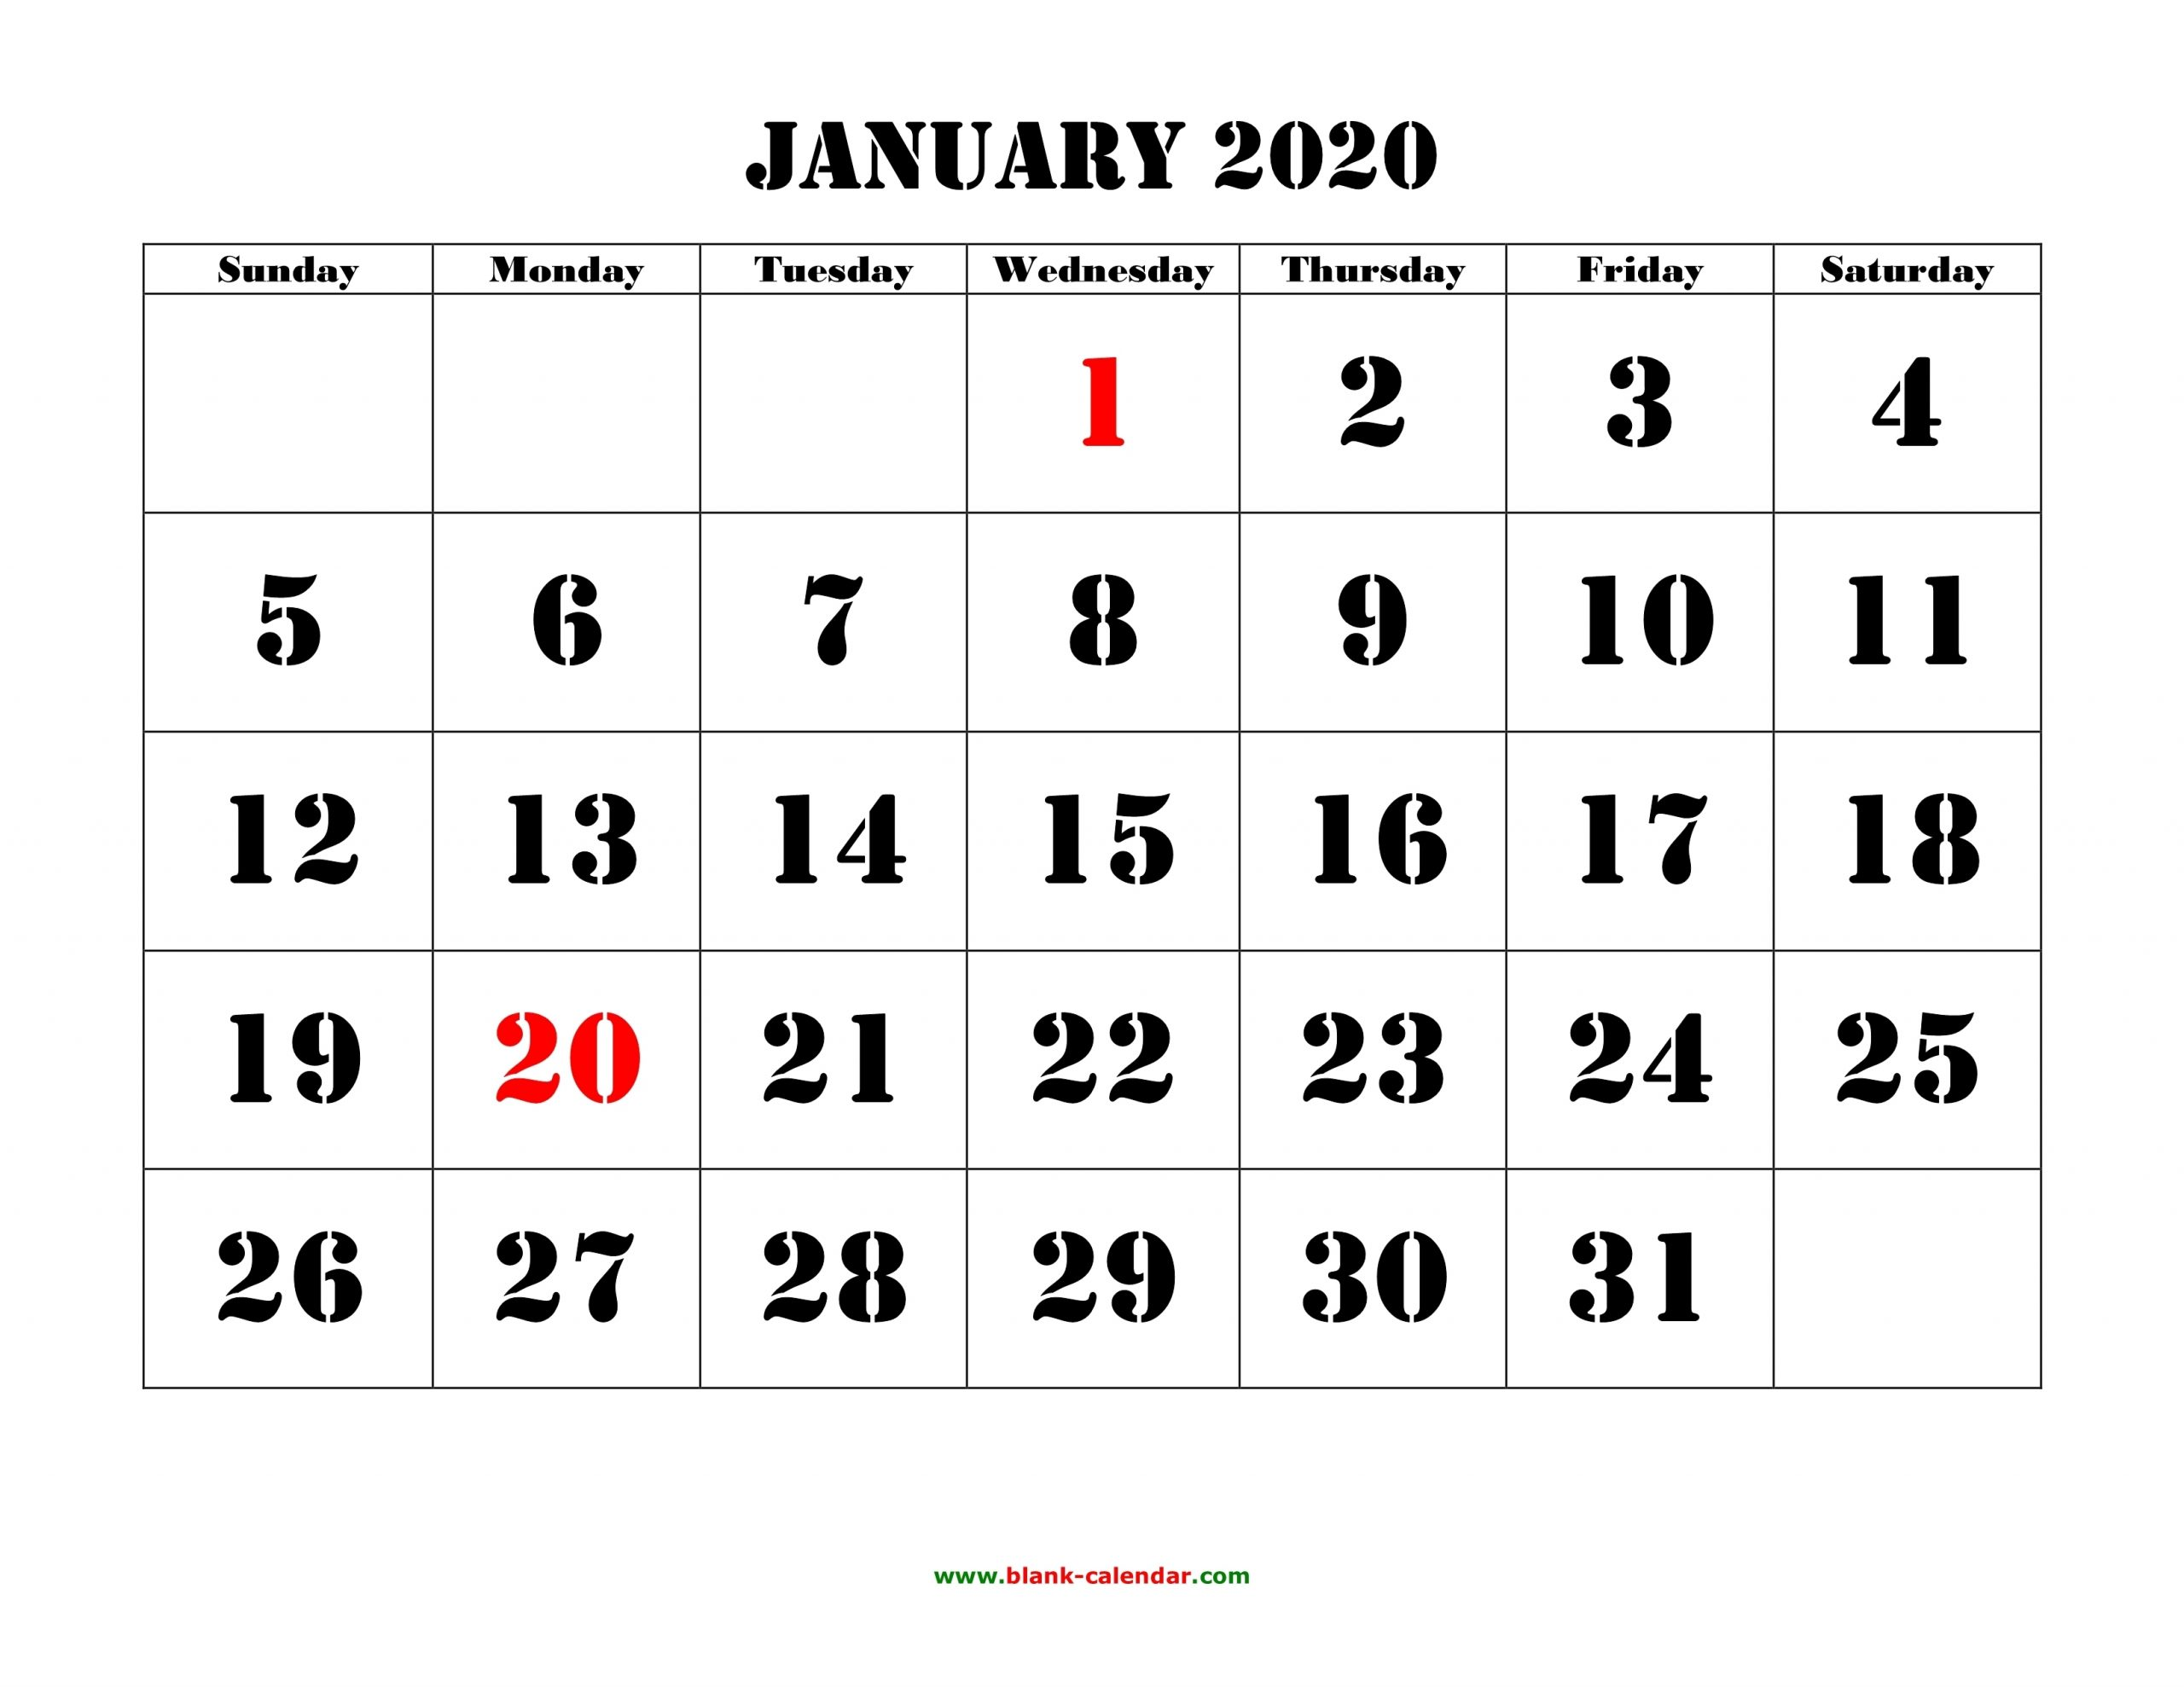 Printable Calendar 2020 | Free Download Yearly Calendar within Year Calendar 2020 With Space To Write Int